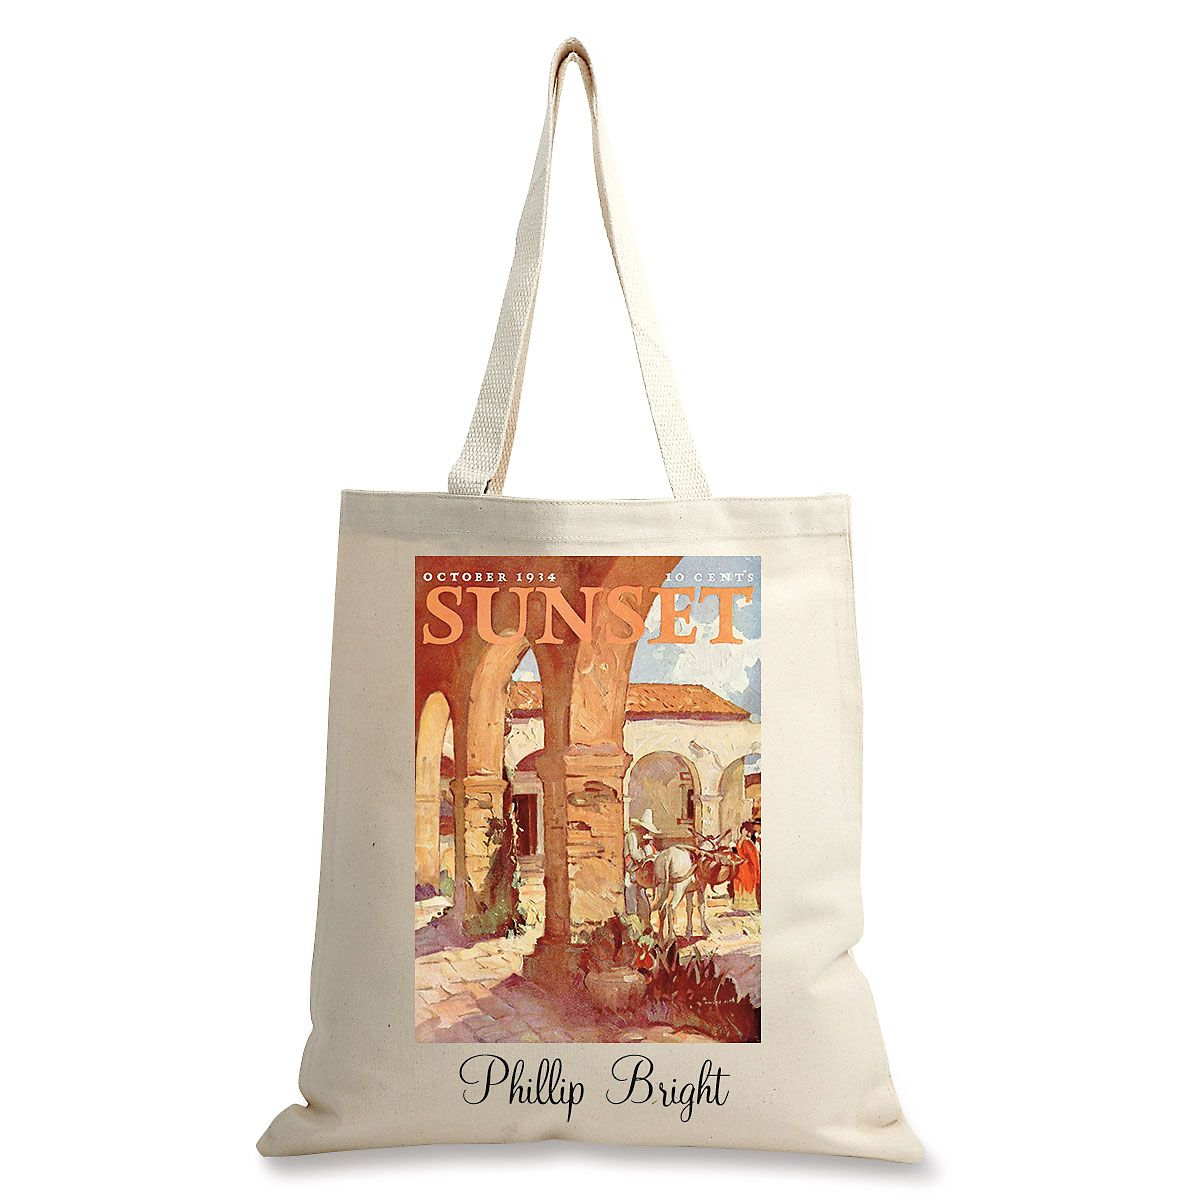 The Mission Personalized Canvas Tote